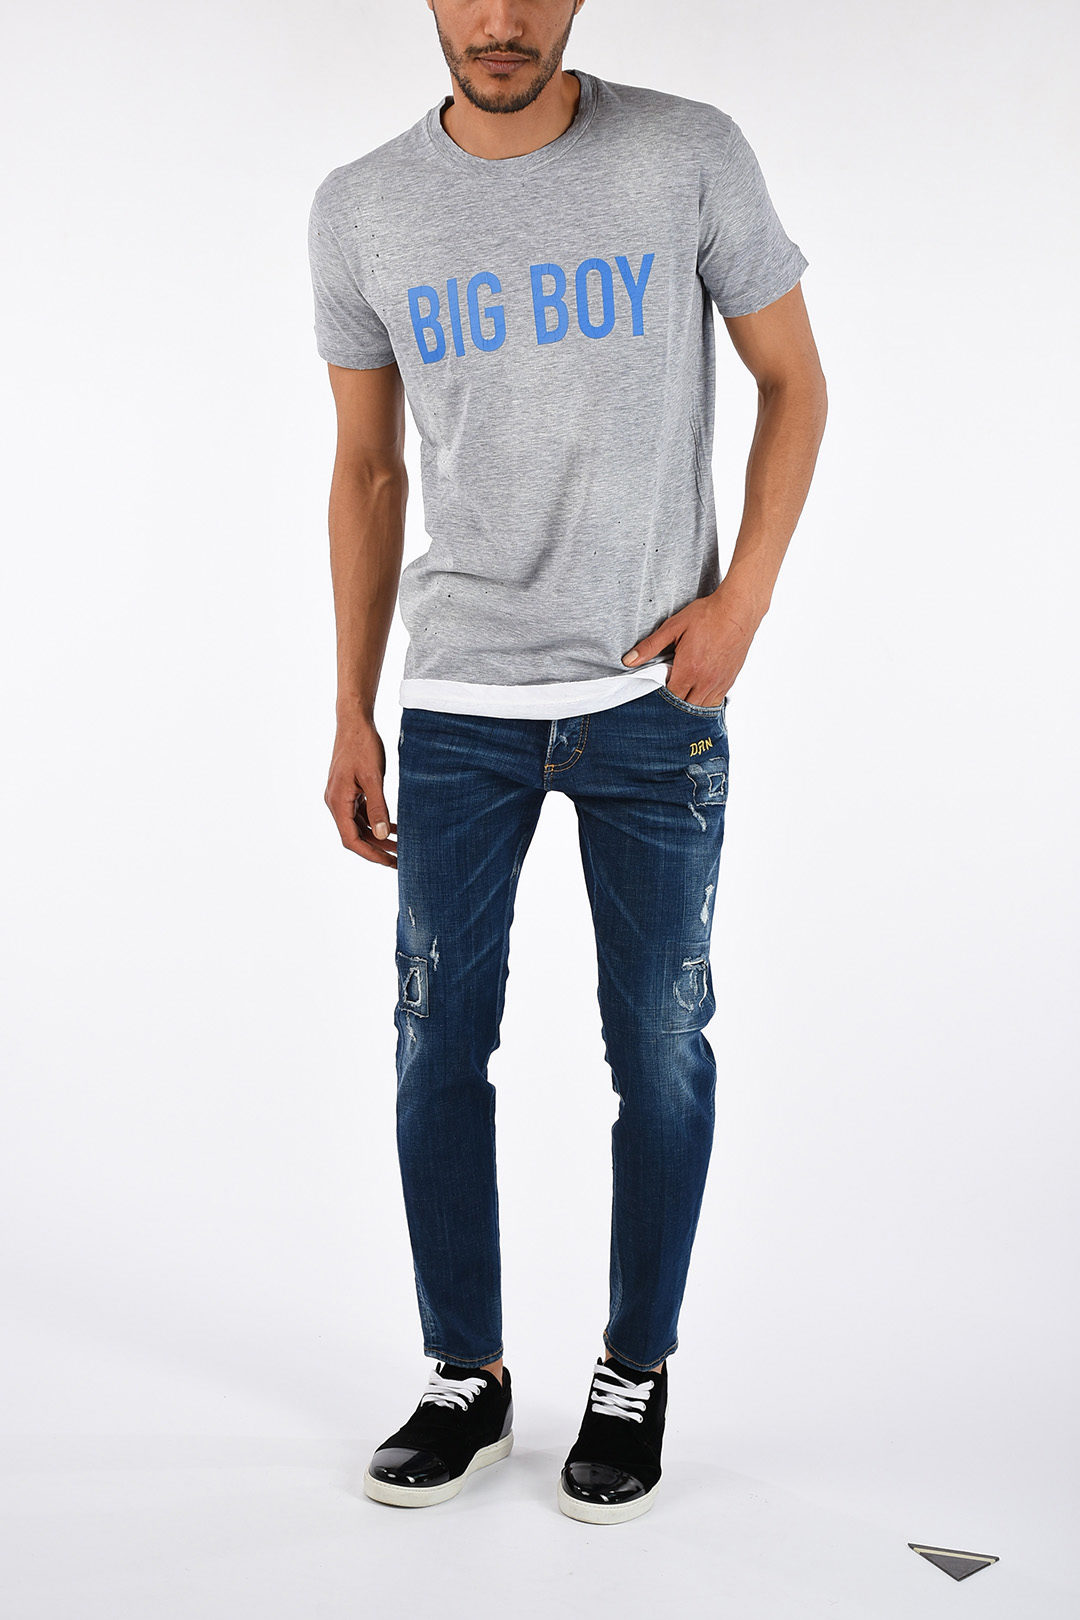 5919e93b Dsquared2 Round Neck BIG BOY T-shirt men - Glamood Outlet